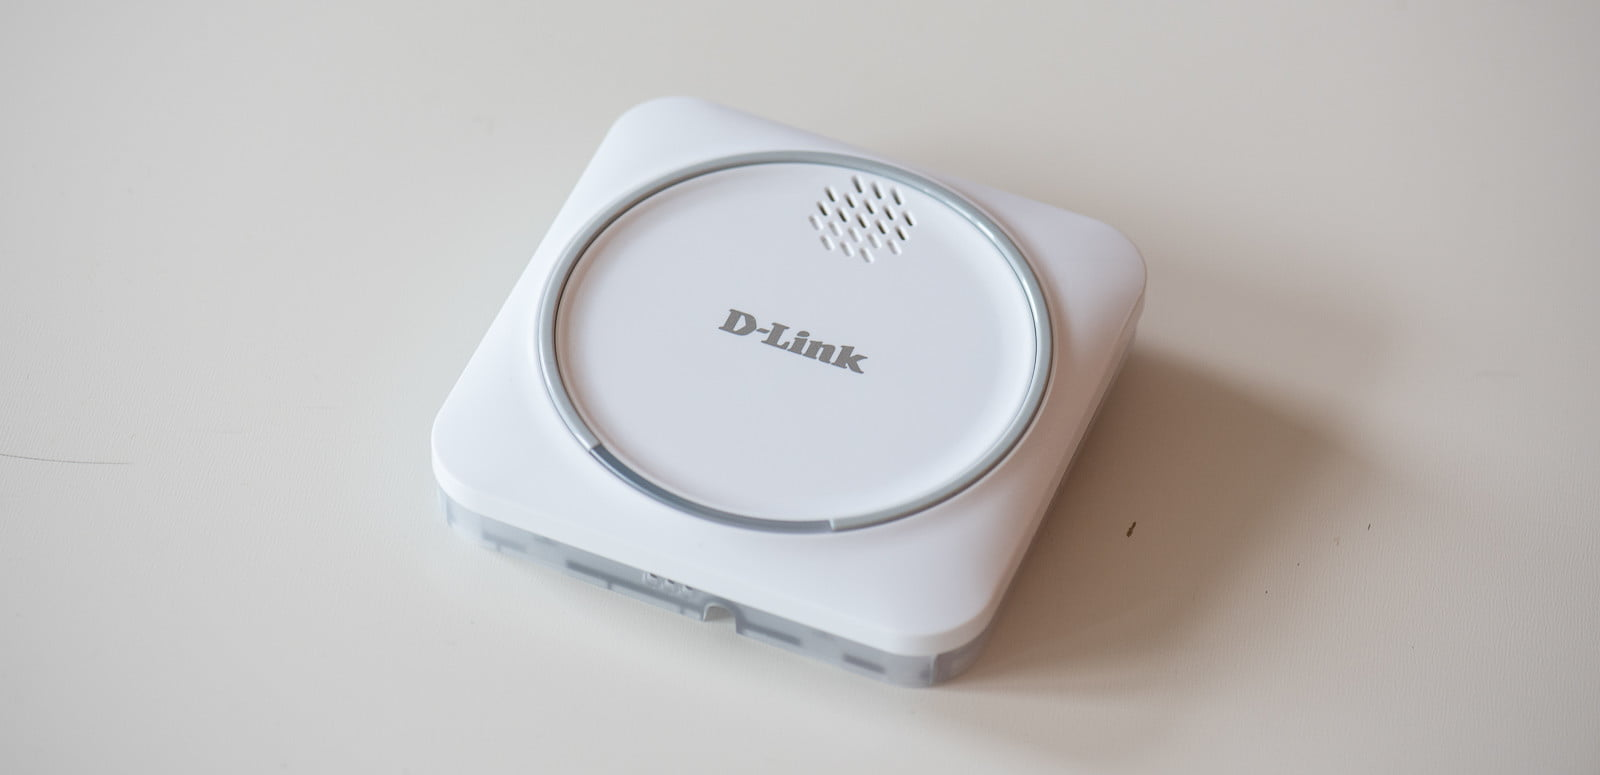 d-link-home-security-0182